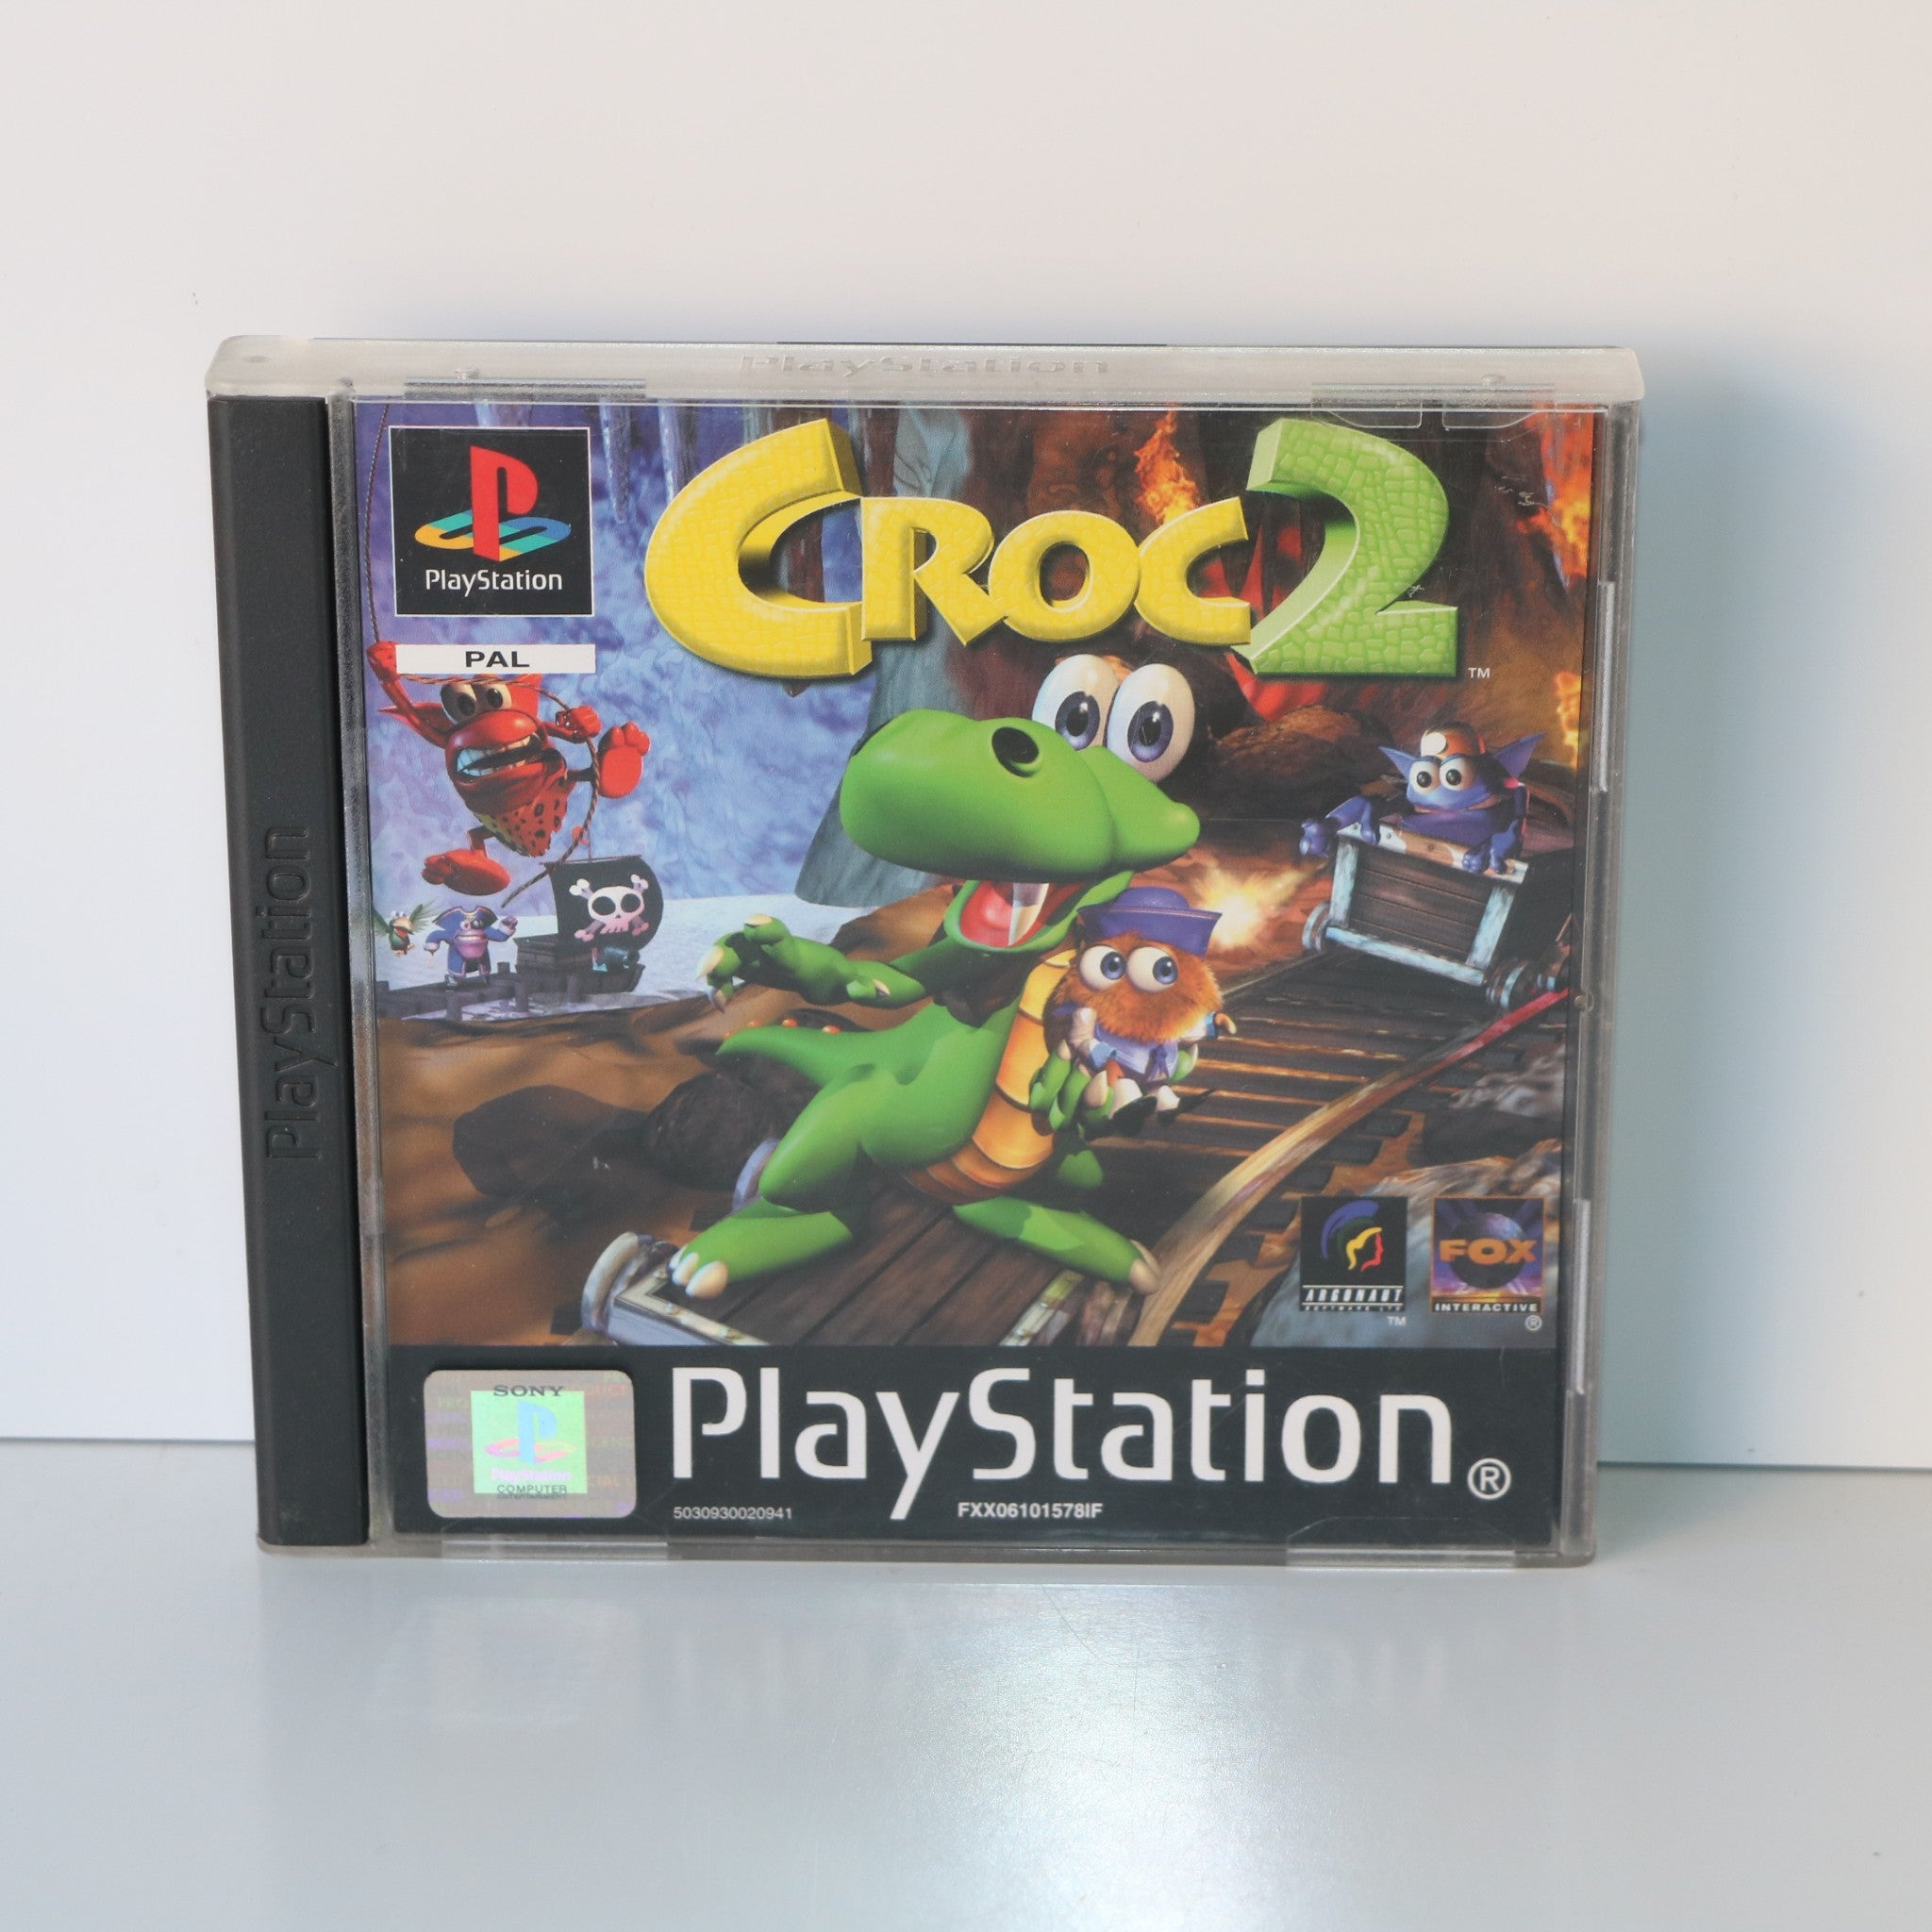 Croc 2 Legend Of The Gobbos - Sony PlayStation PSOne PS1 Game